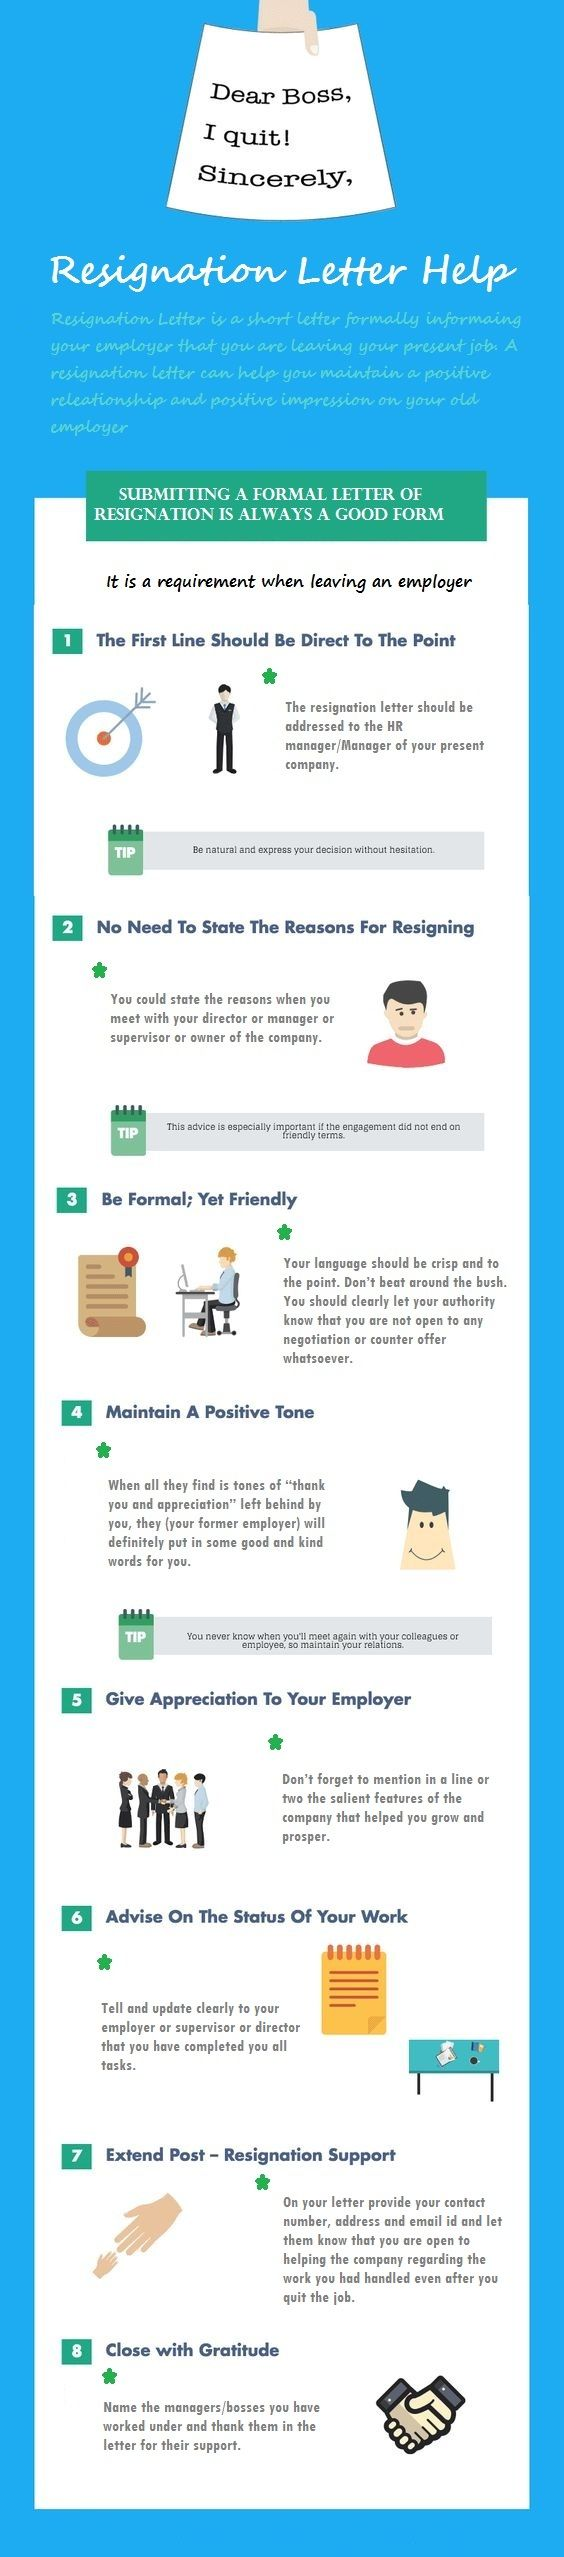 The 25 best resignation letter format ideas on pinterest letter all resignation letter help you will find here the details how to write a resignation madrichimfo Images